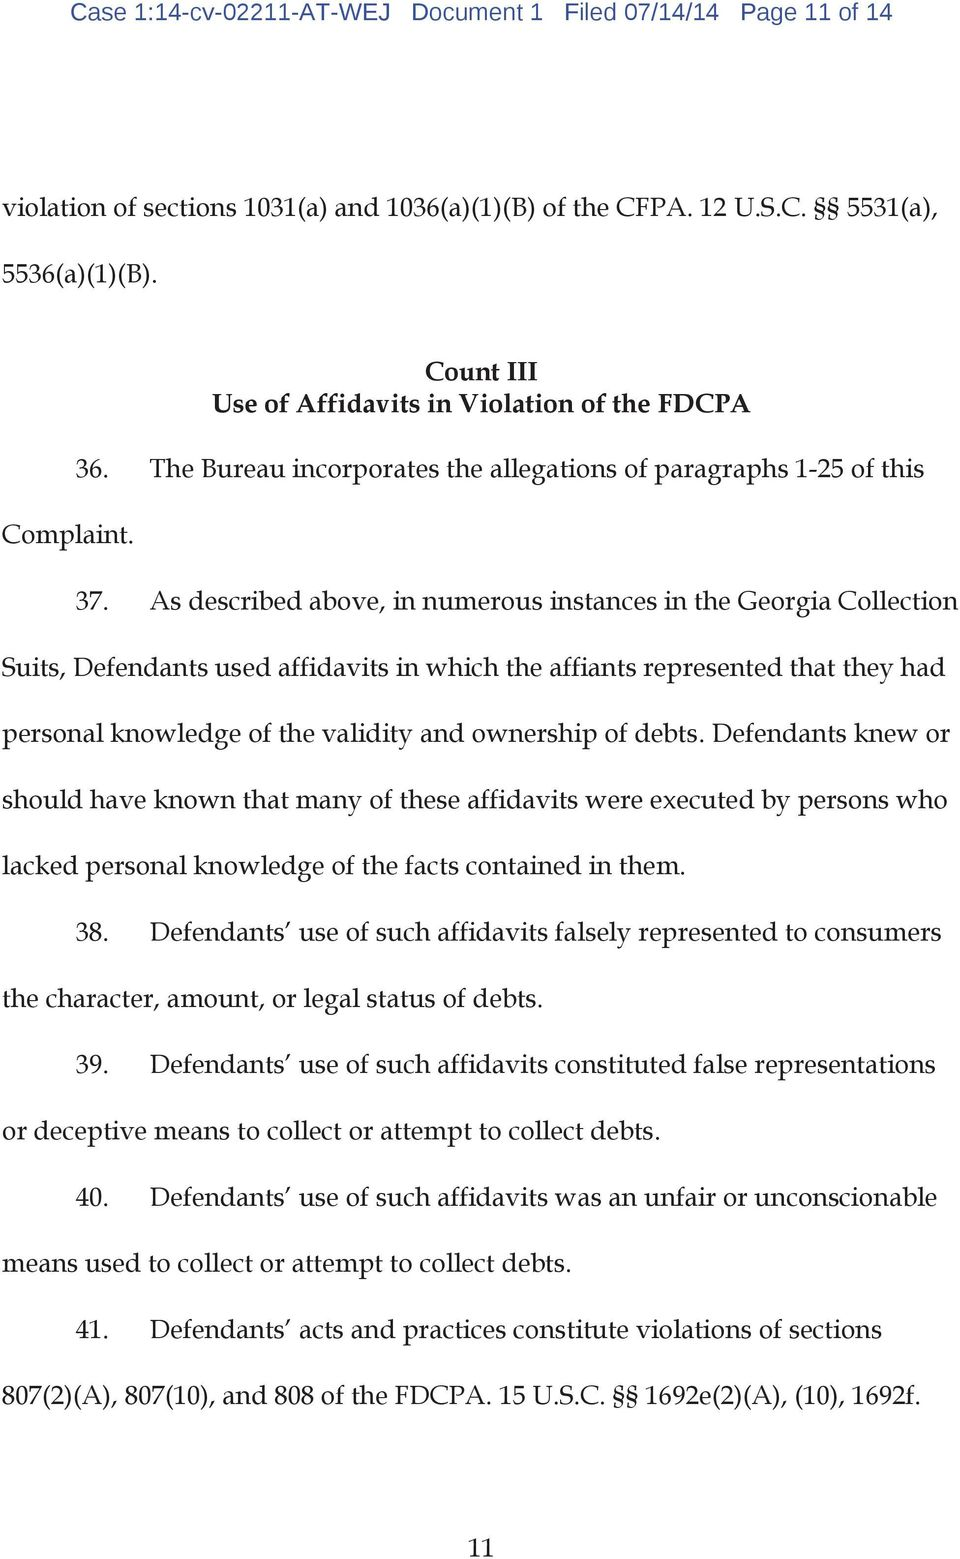 As described above, in numerous instances in the Georgia Collection Suits, Defendants used affidavits in which the affiants represented that they had personal knowledge of the validity and ownership